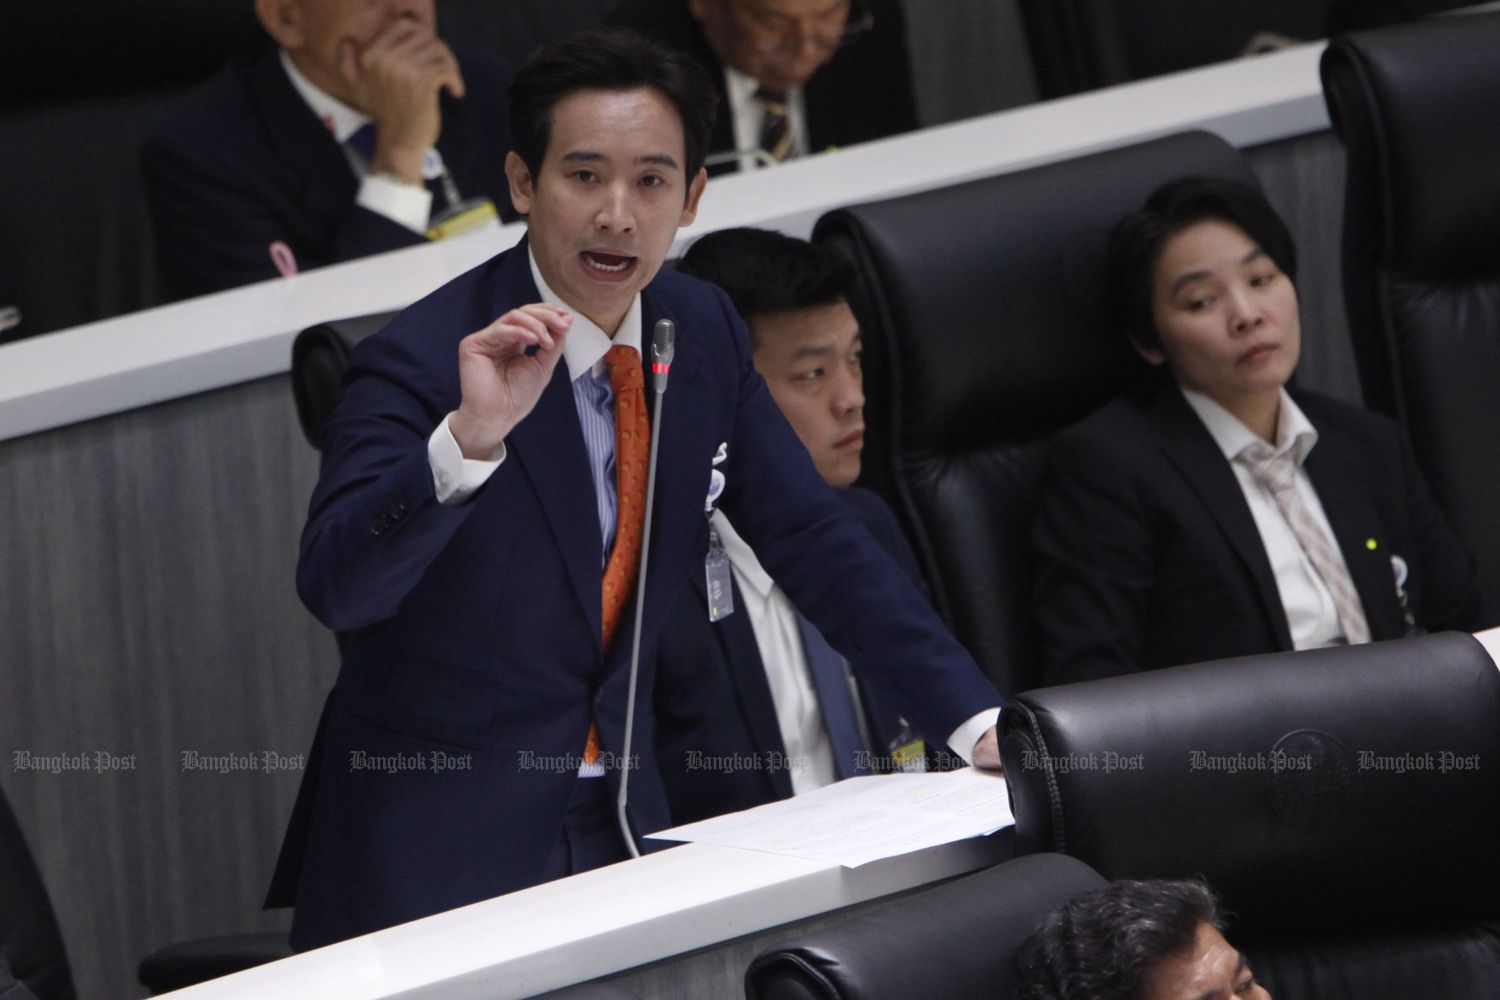 List MP Pita Limjaroenrat, who is touted to lead the remaining MPs of the former Future Forward Party, speaks at Parliament on Feb 24. (Photo by Wichan Charoenkiatpakul)